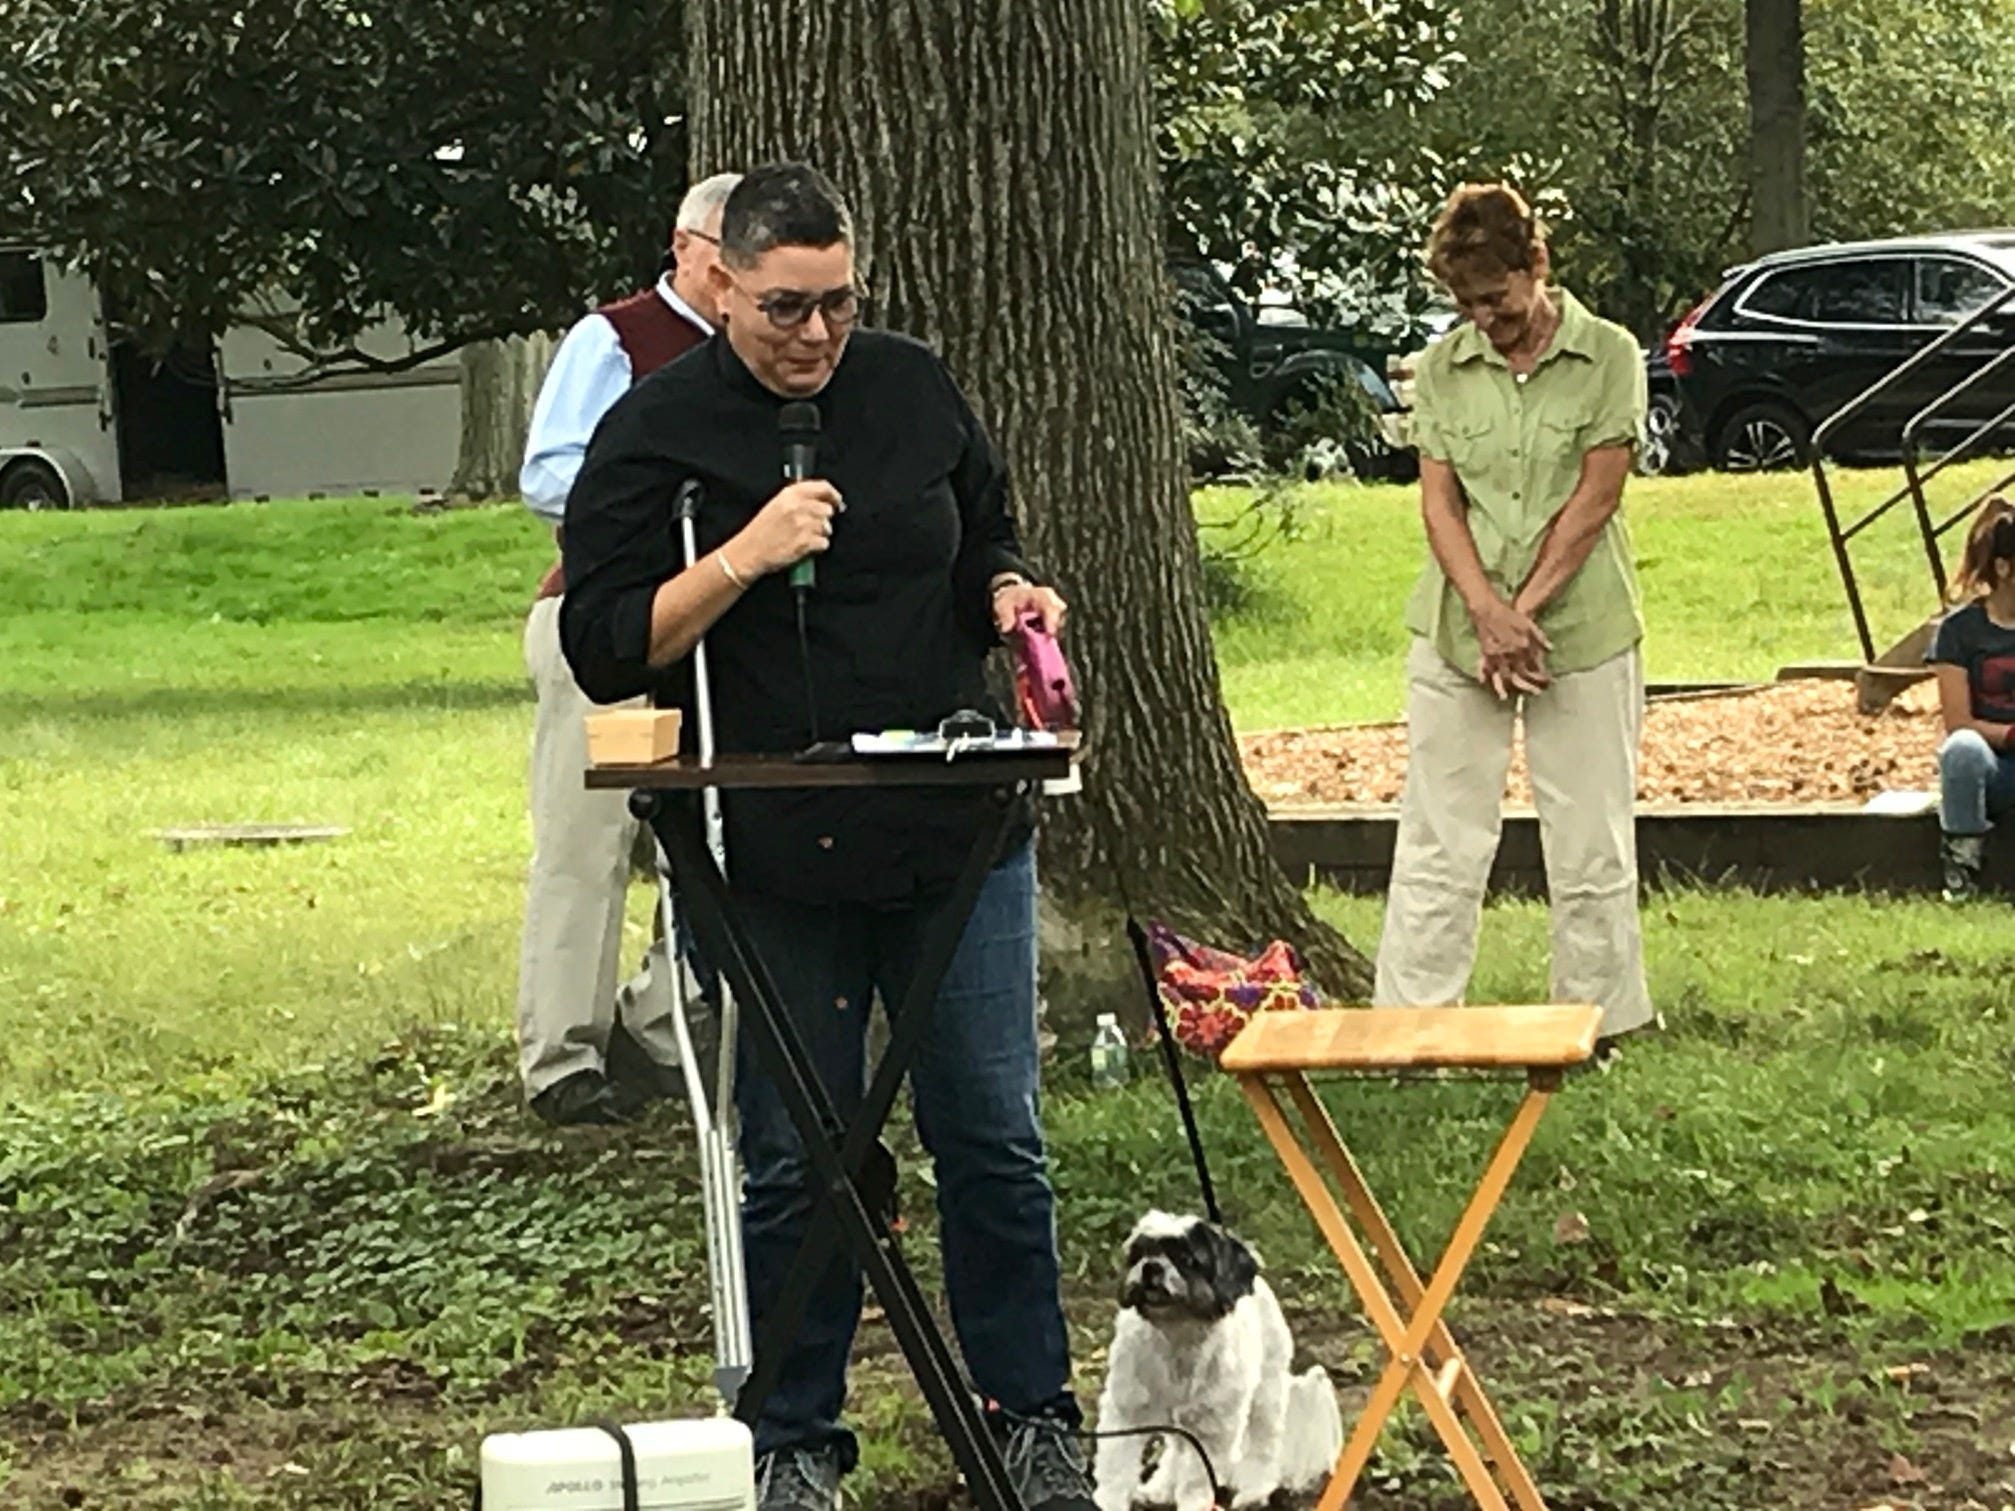 The Rev. Demaris Ortega offers a blessing during Sunday's Animal Initiative Committee's Celebration of Animals at Leland Avenue Park in Plainfield